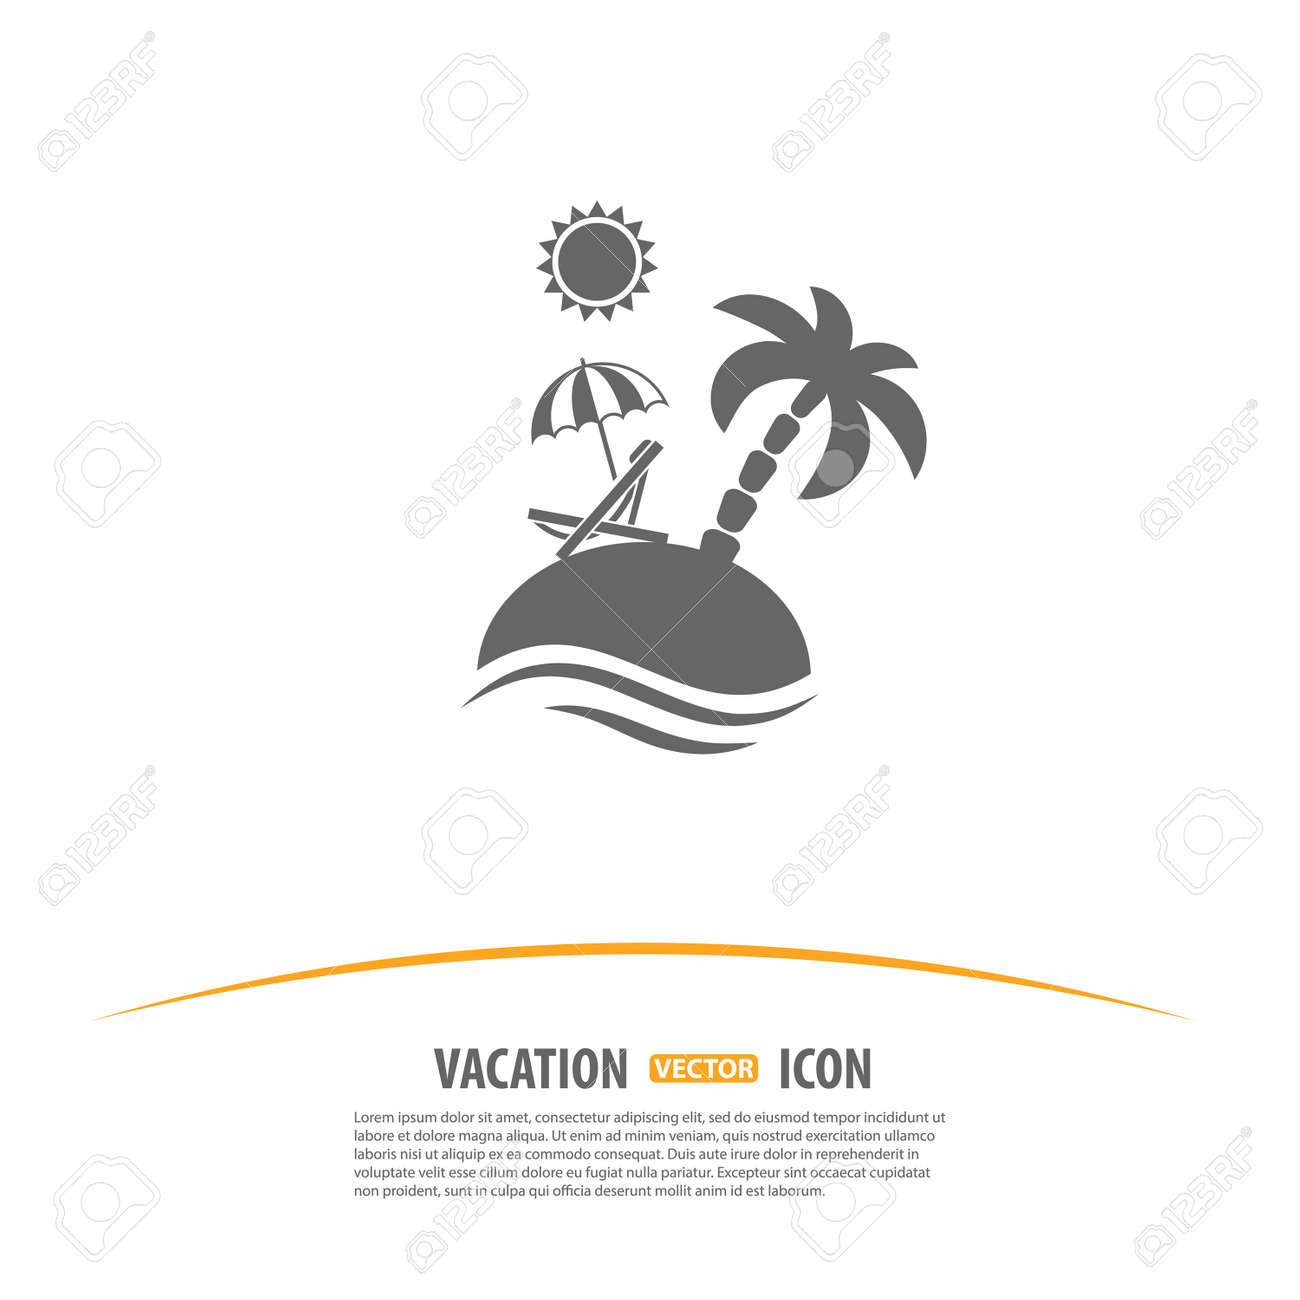 Beach chair and umbrella black and white - Travel Tourism And Vacation Logo Design Template Island With Palms Sun Umbrella